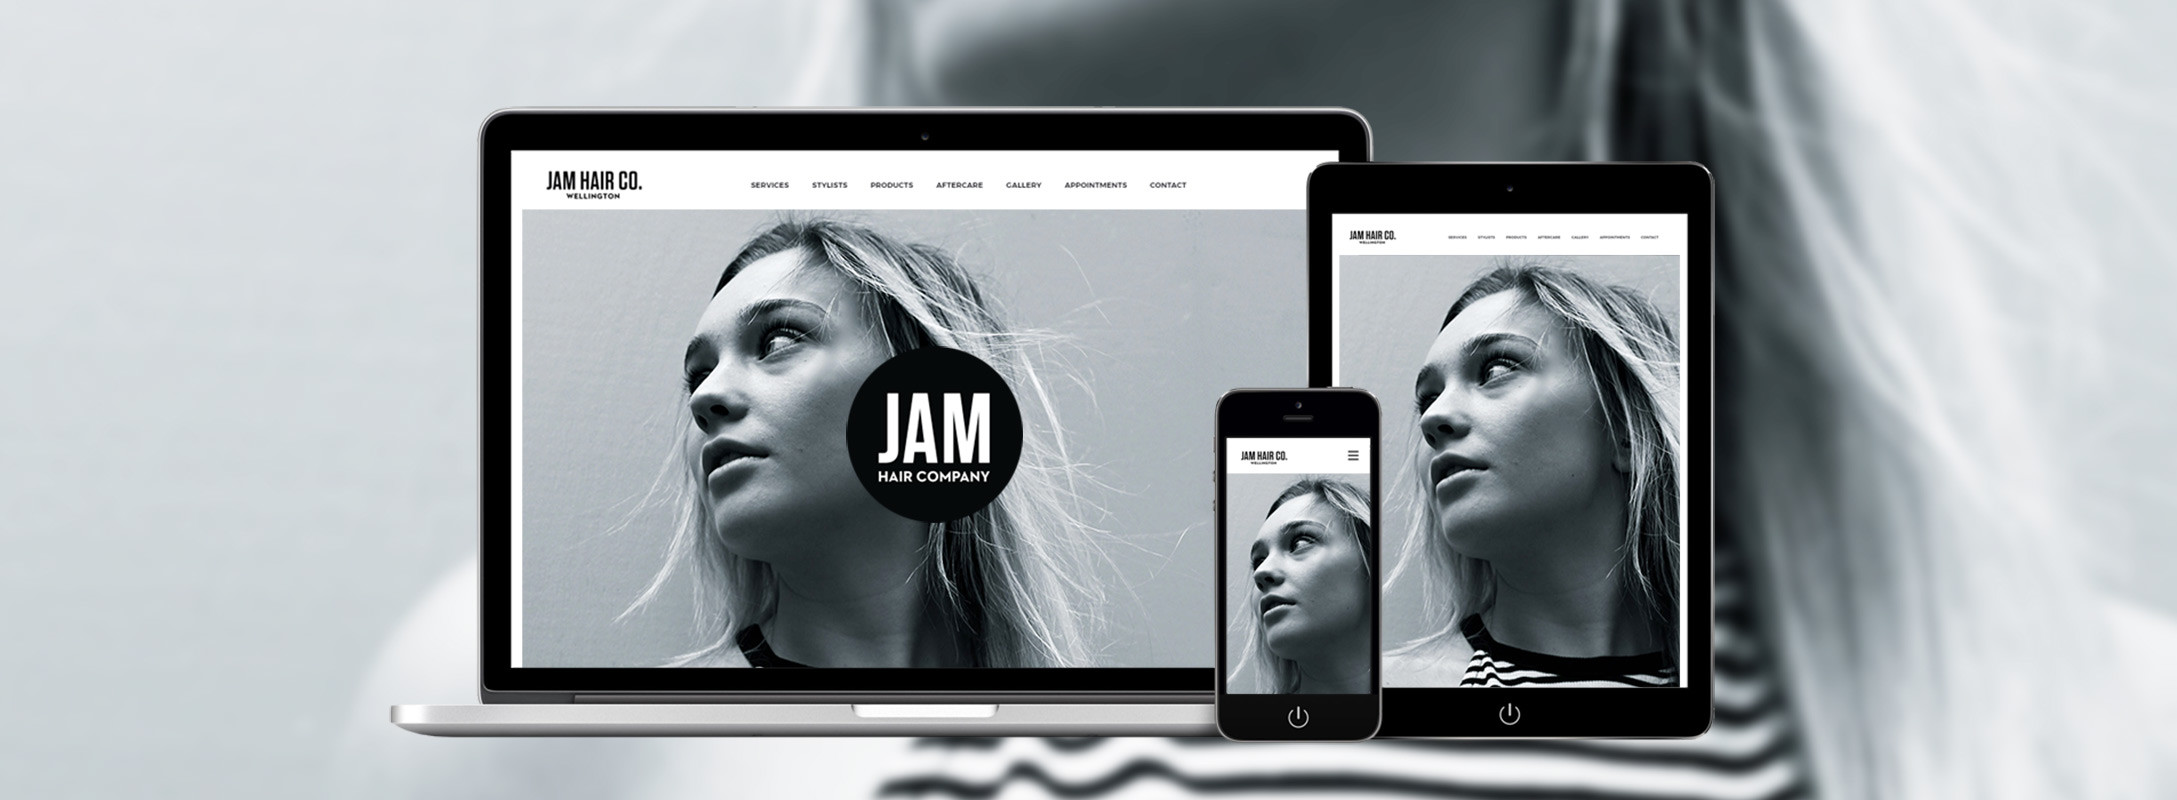 web-design-wordpress-jam-hair-wellington-1